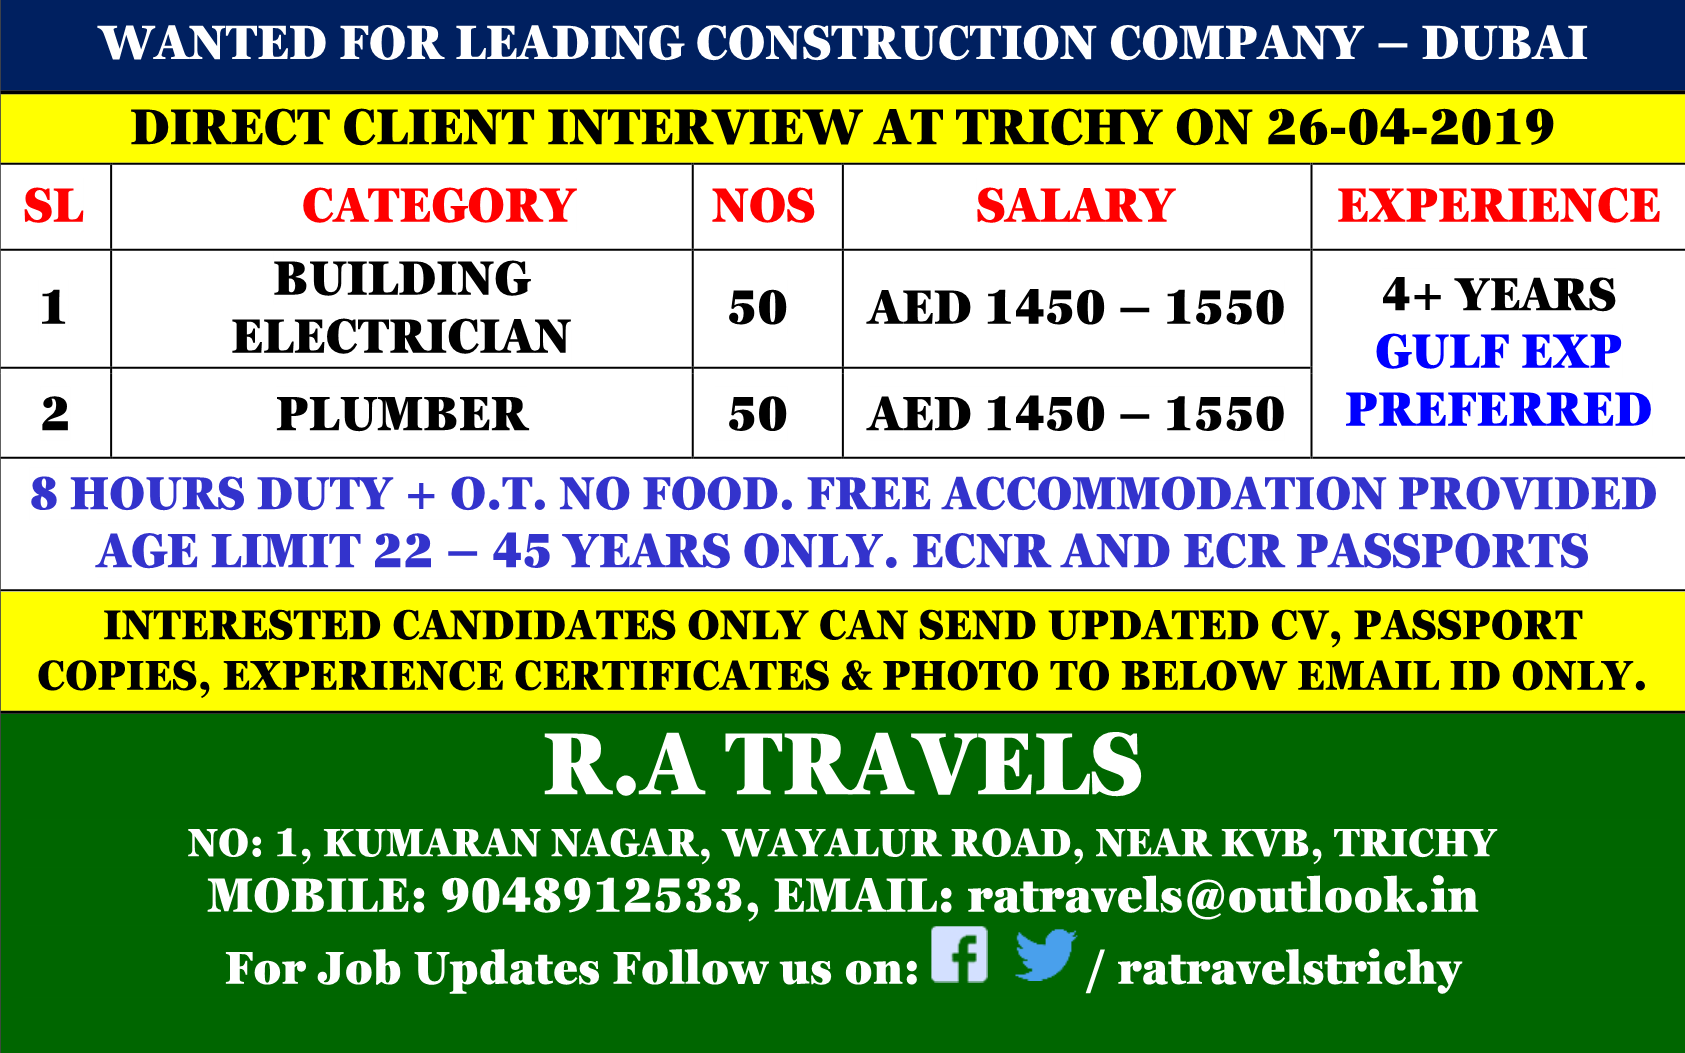 Wanted for Leading Construction Company in Dubai